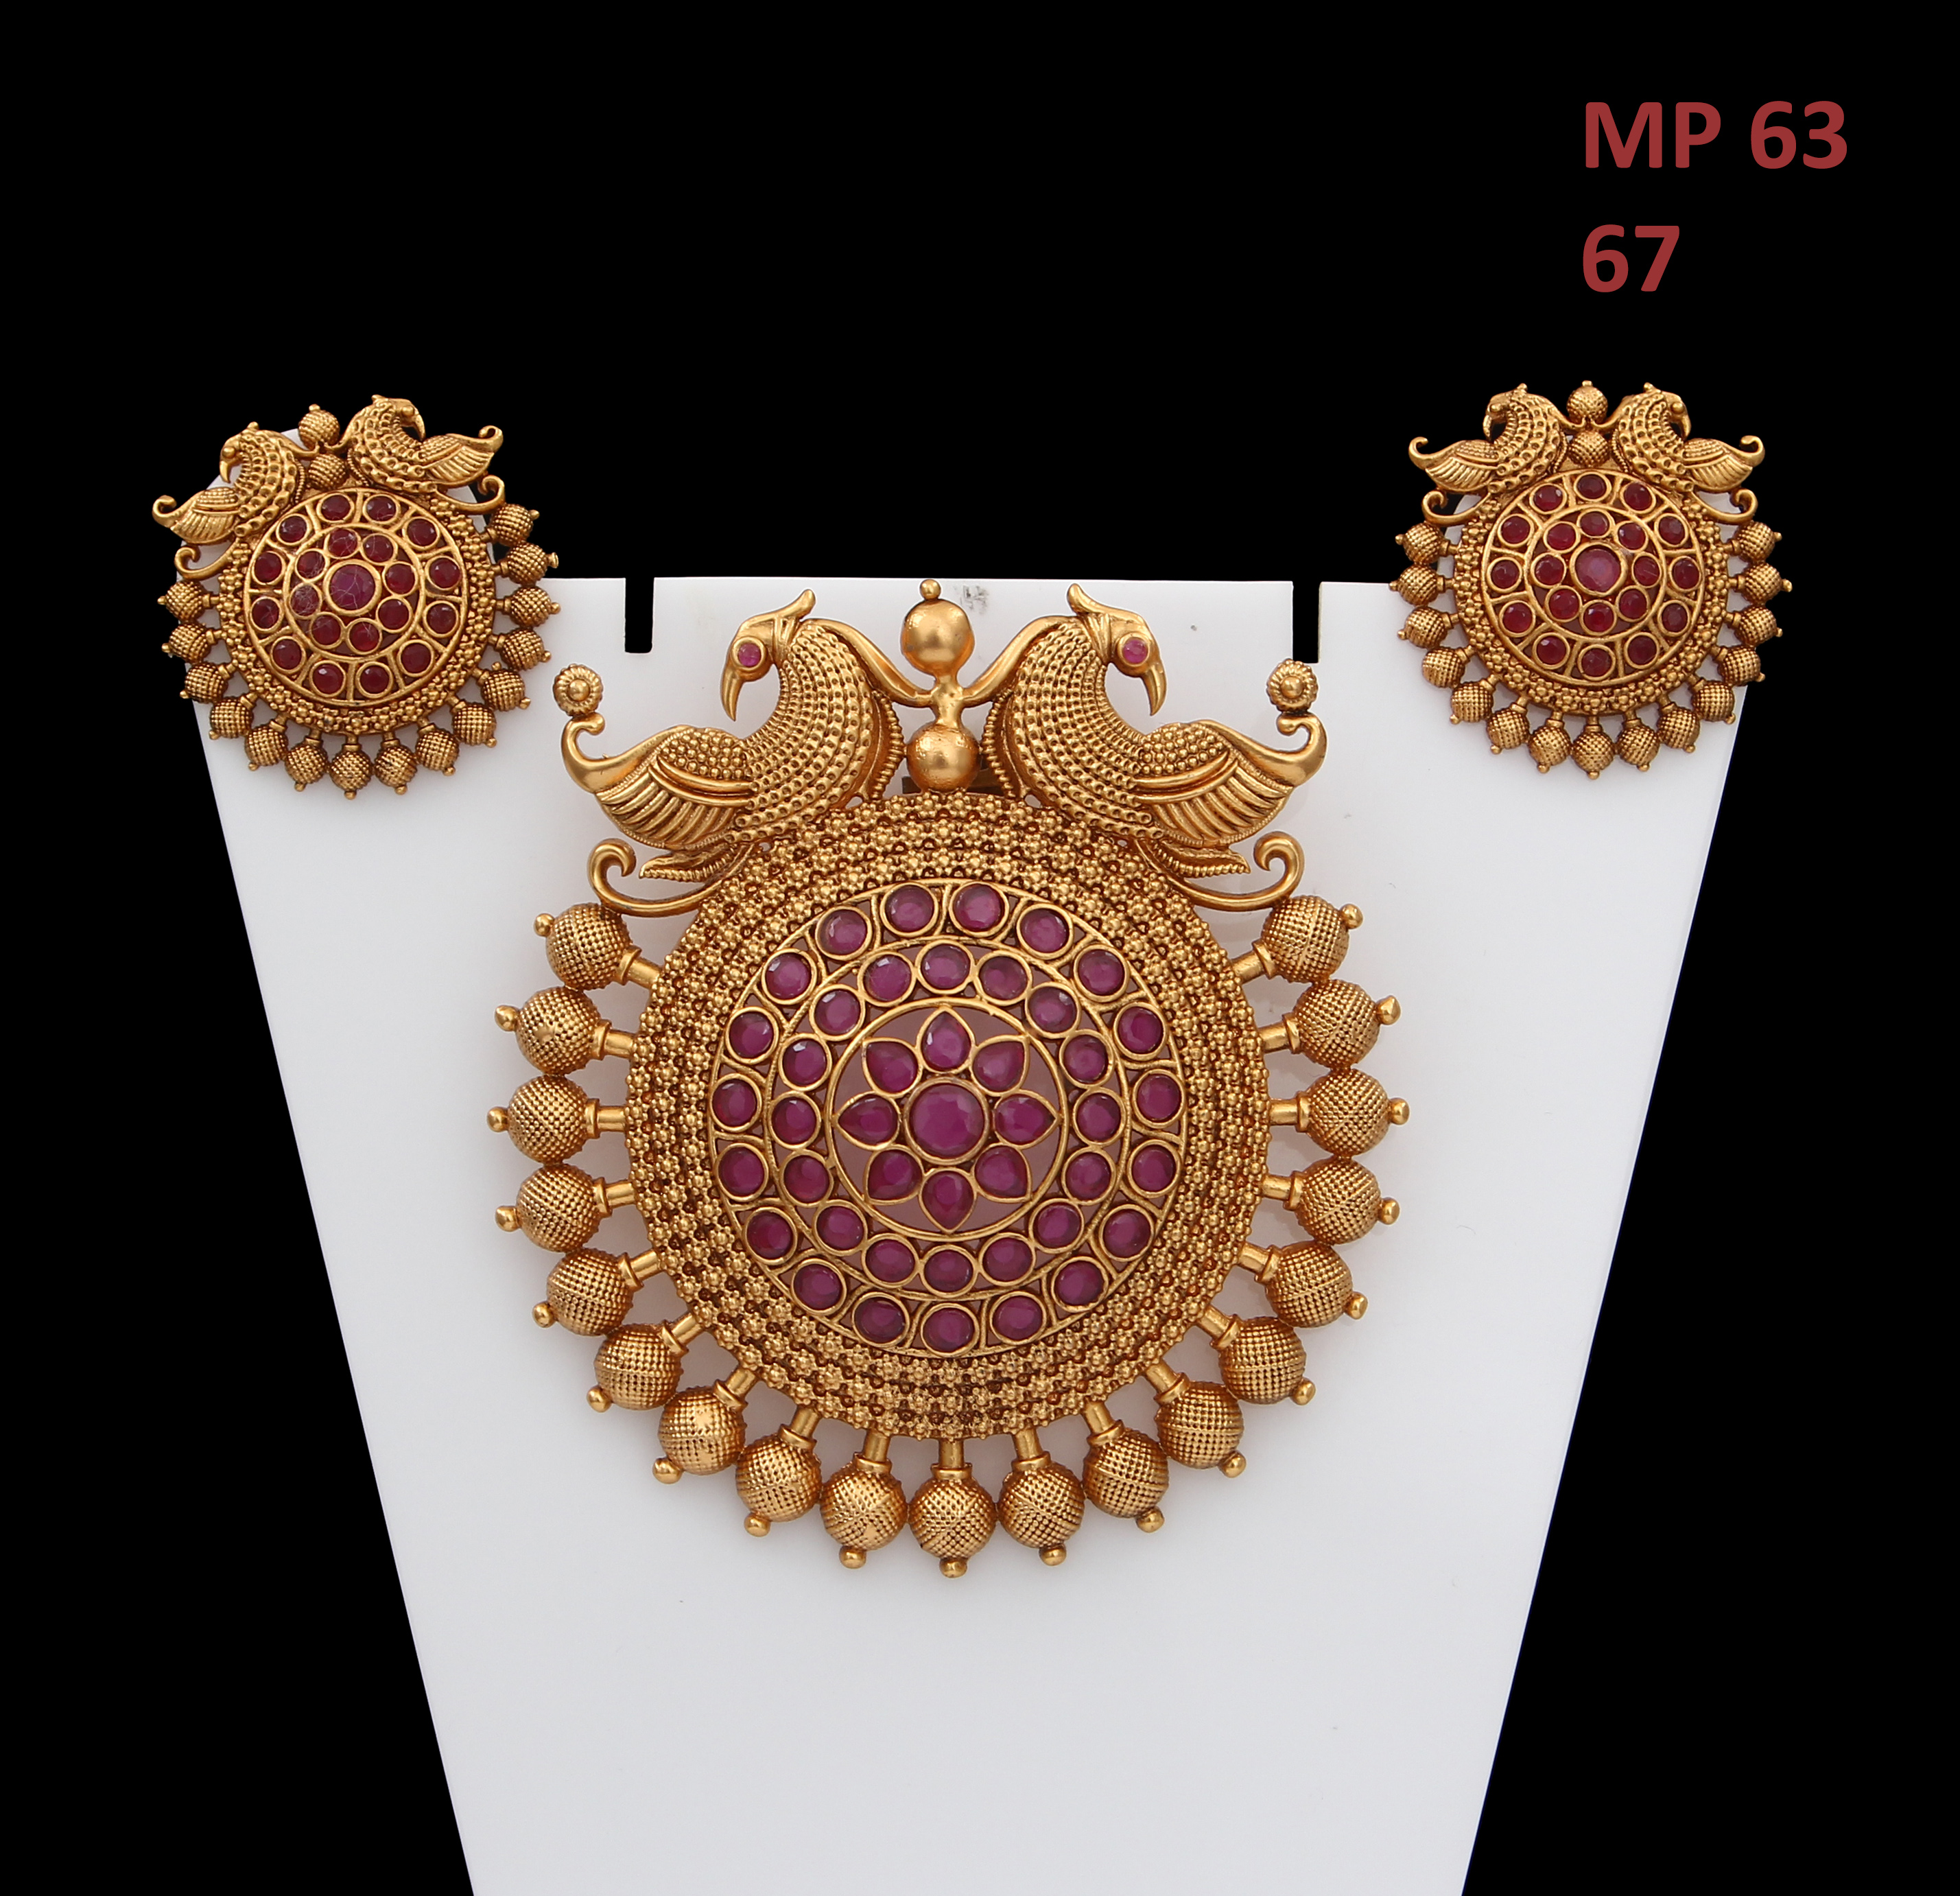 55Carat   55Carat Bollywood Style Pendant Earrings Set Red Crystal Yellow Gold Plated Latest Stylish Fancy Fashion Jewellery for Girlfriend Wife Love